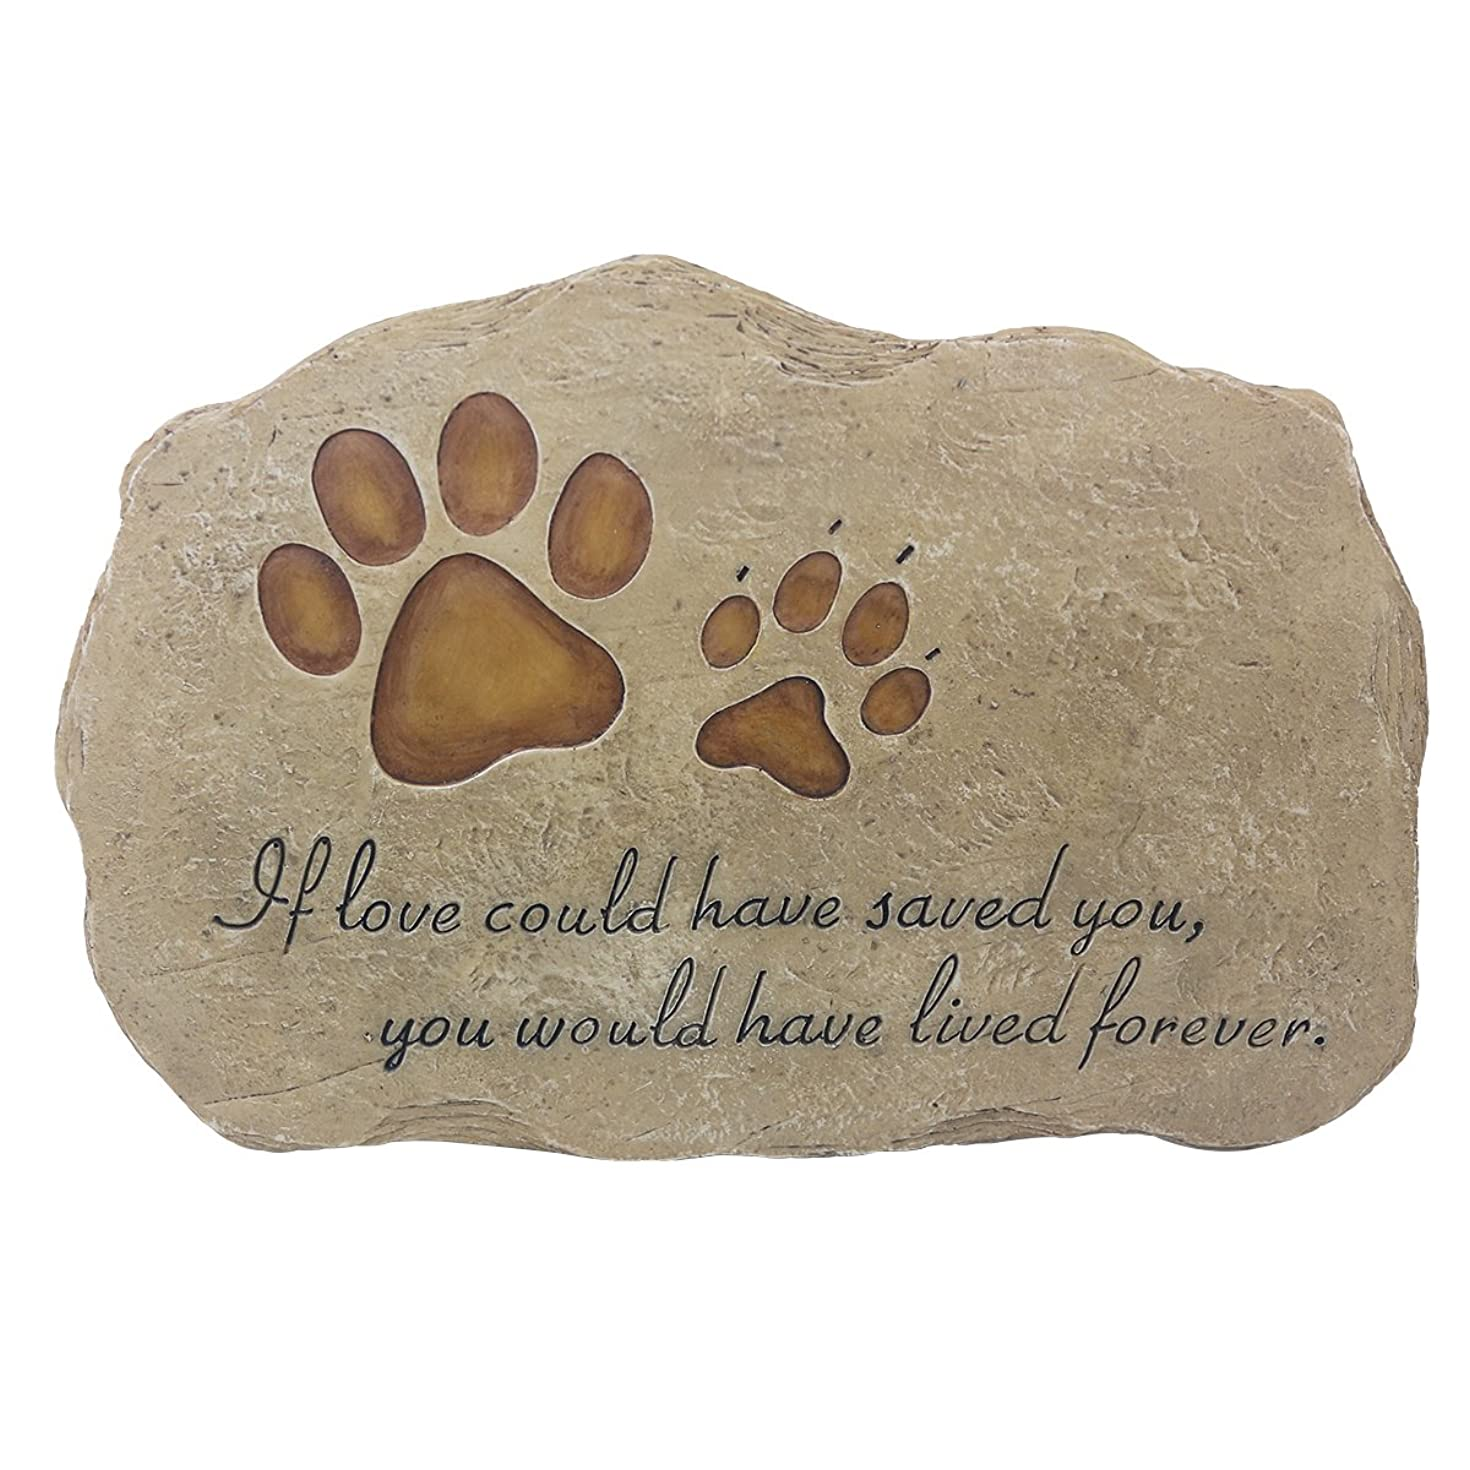 JSYS Pet Memorial Stone Marker for Dog or Cat for Outdoor Garden, Backyard, or Lawn.